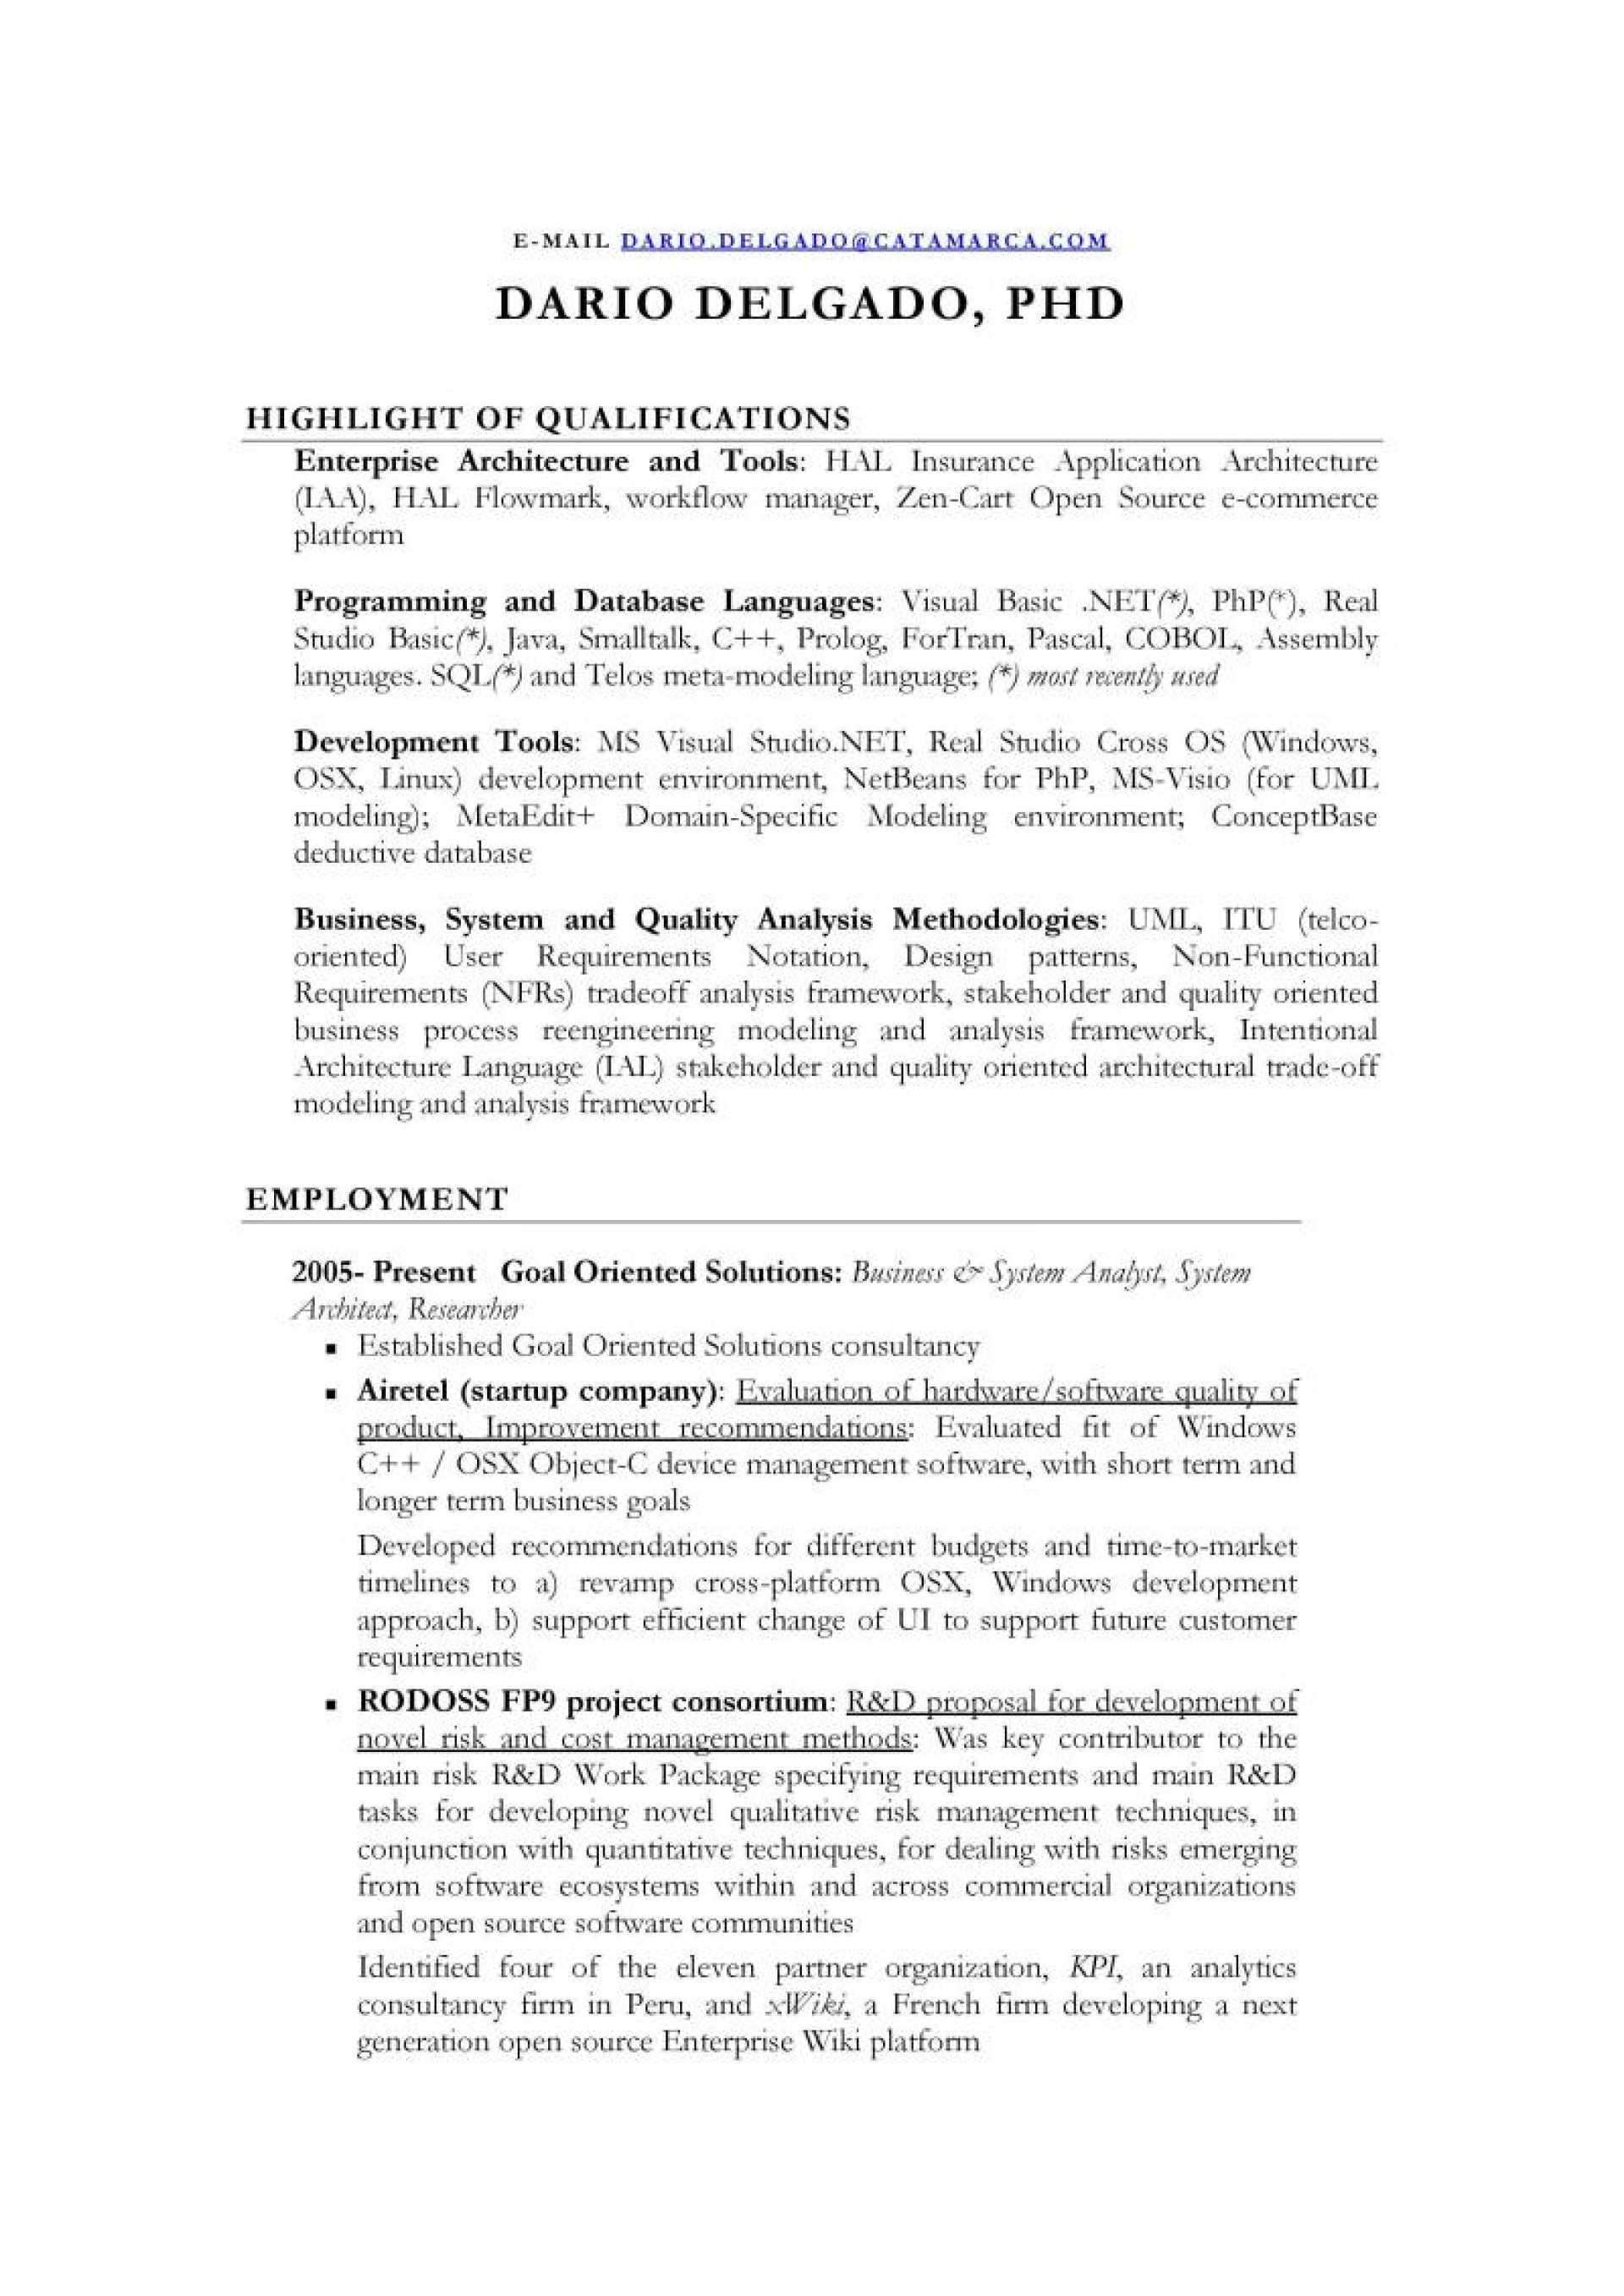 016 Sample Resume Net Developer Unique Essays Apply Texas Professional School Essay Example Of Developerresize8002c1131ssl1 Archaicawful Topics Prompt C Topic Examples A 1920